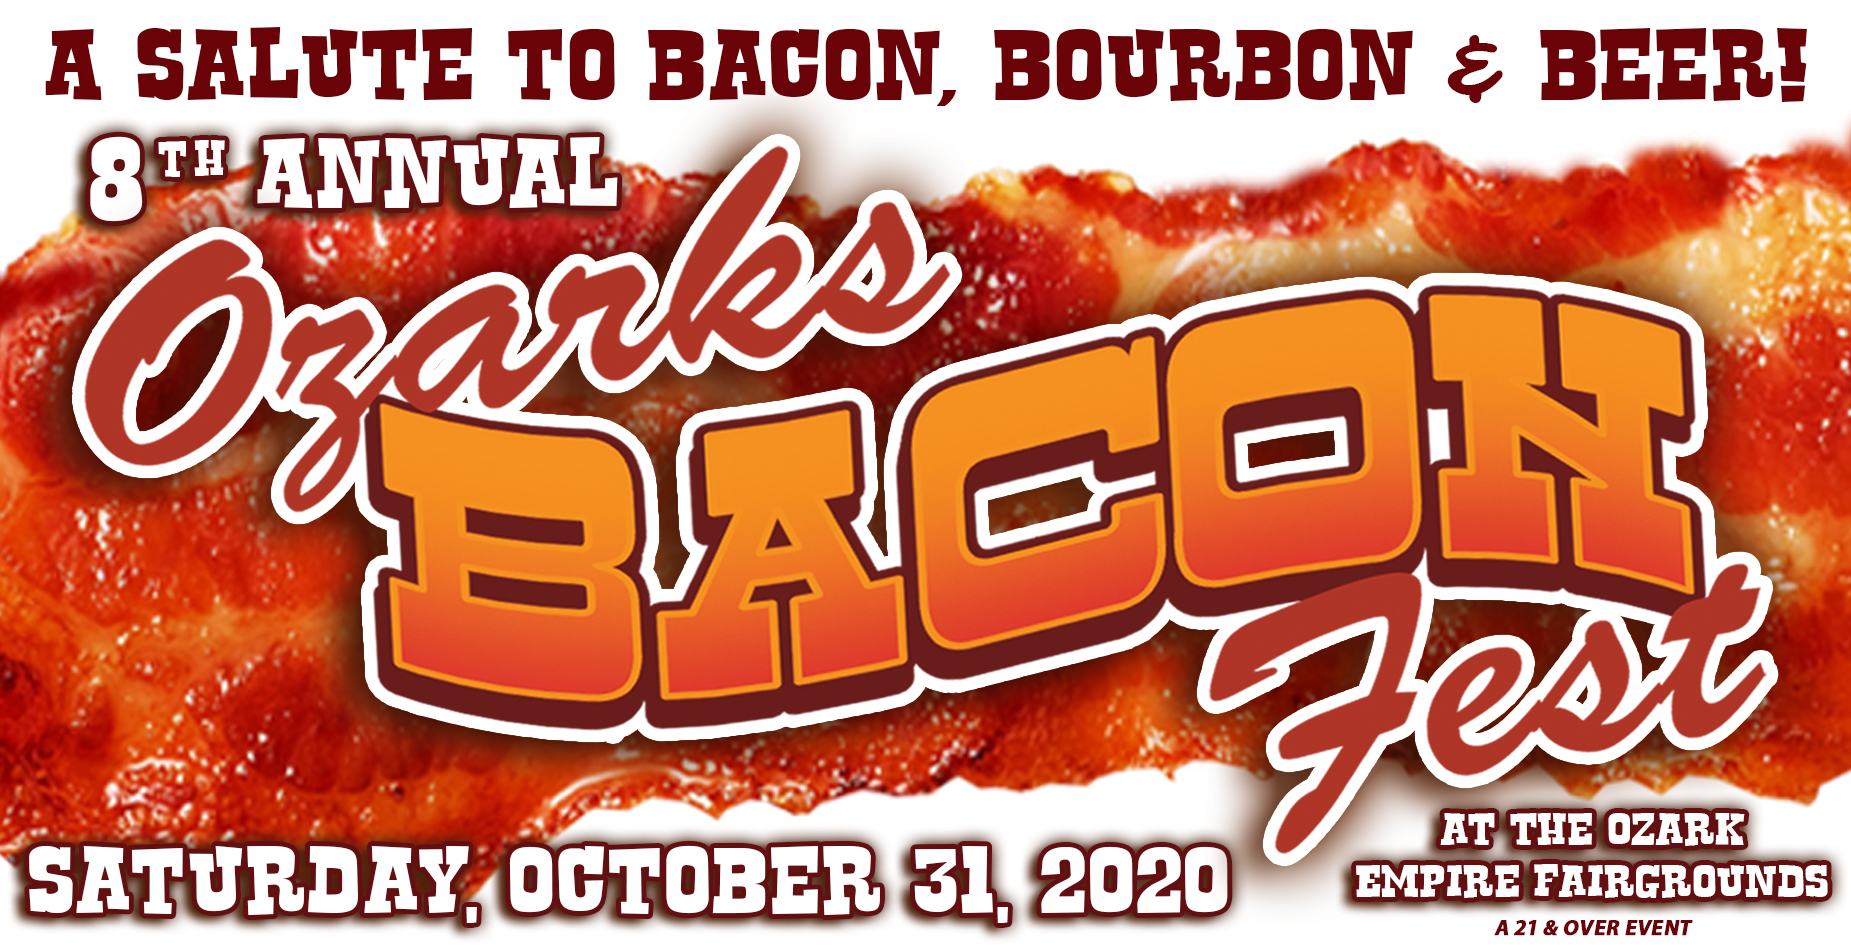 facebook event header 2020 Bacon Fest